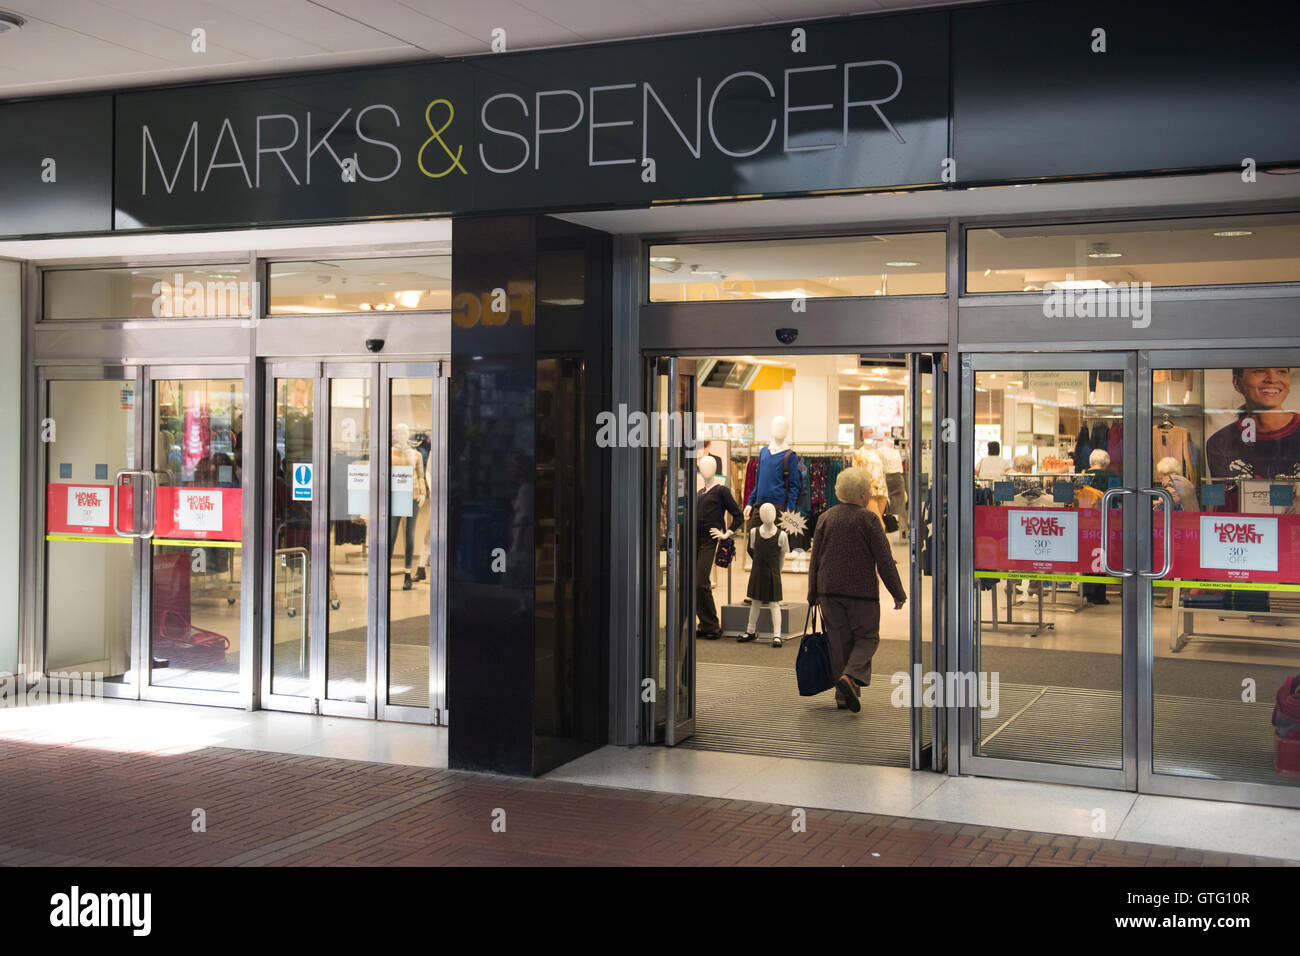 Marks and Spencer (m&s) exterior store sign logo in Cwmbran, South Wales. - Stock Image